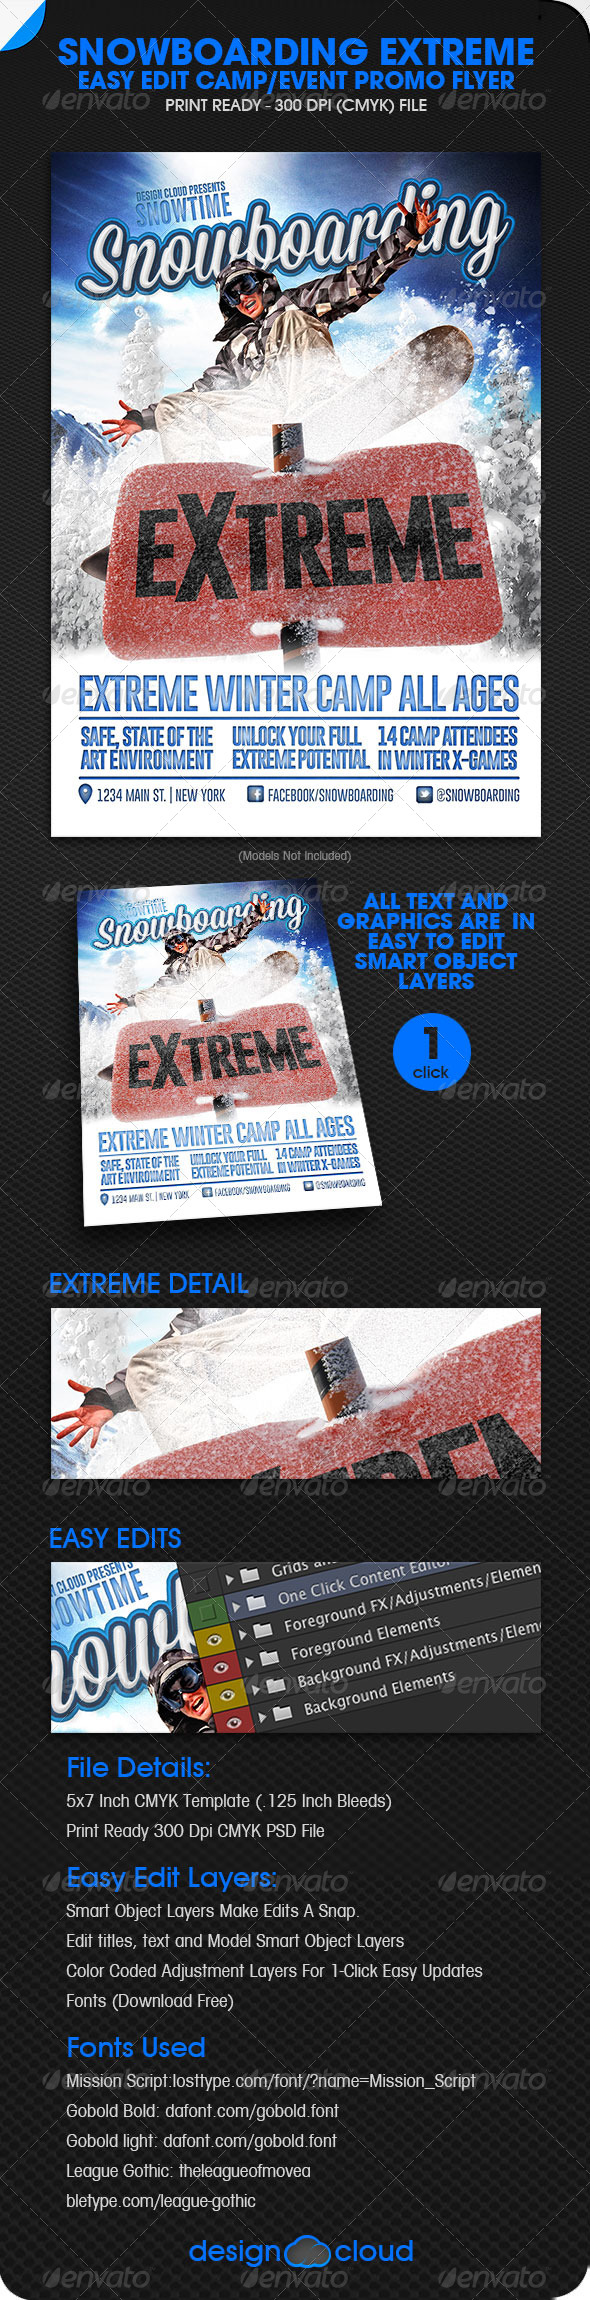 Snowboarding Extreme Camp Event Promo